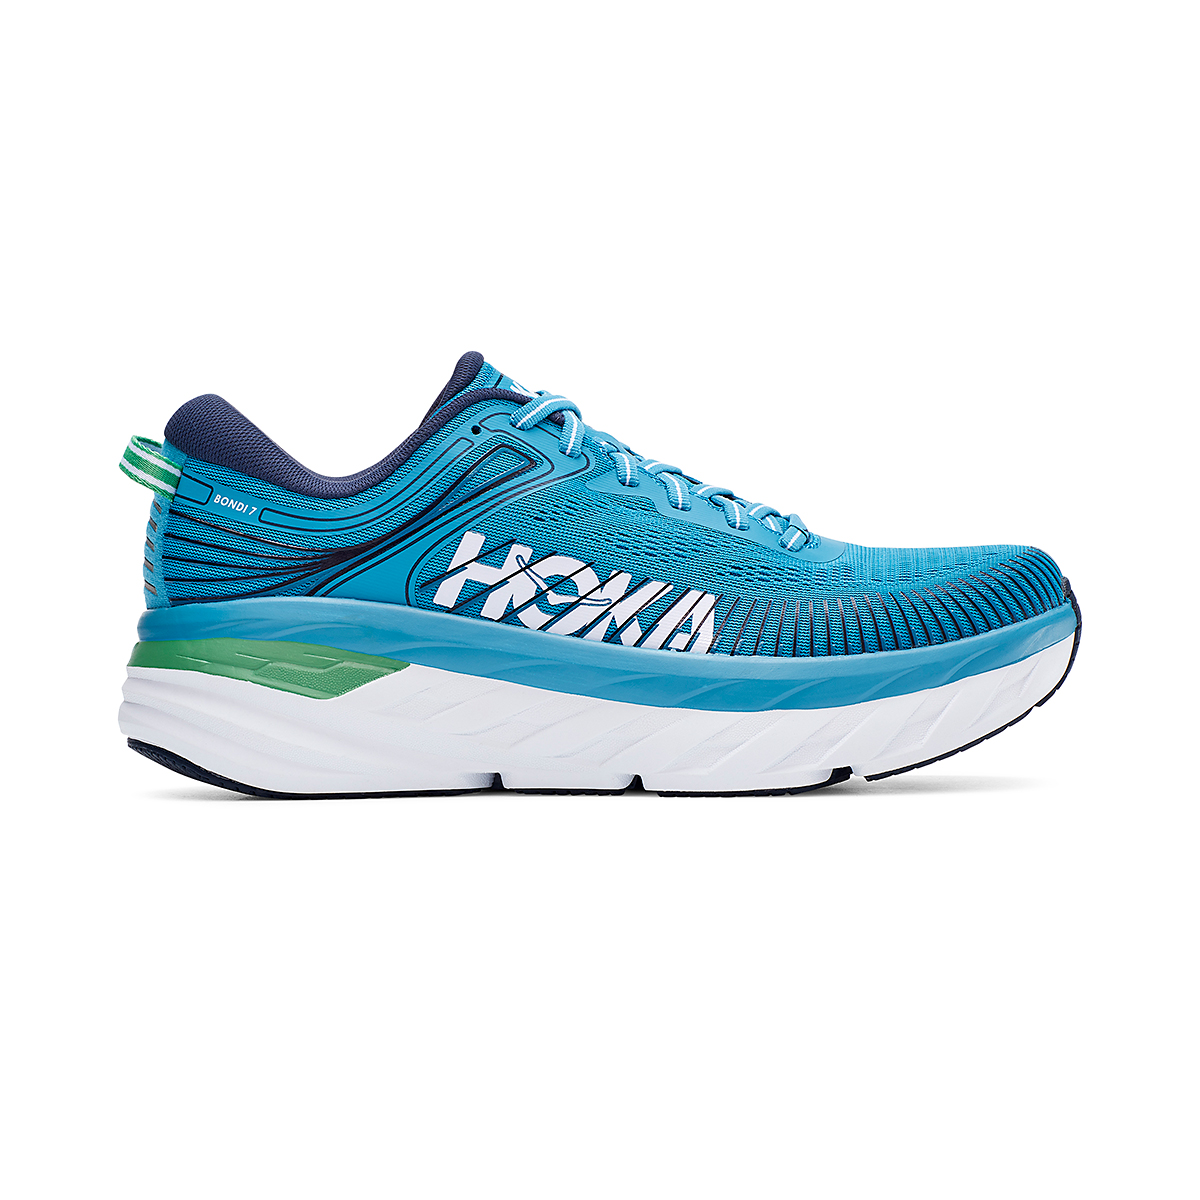 Women's Hoka One One Bondi 5